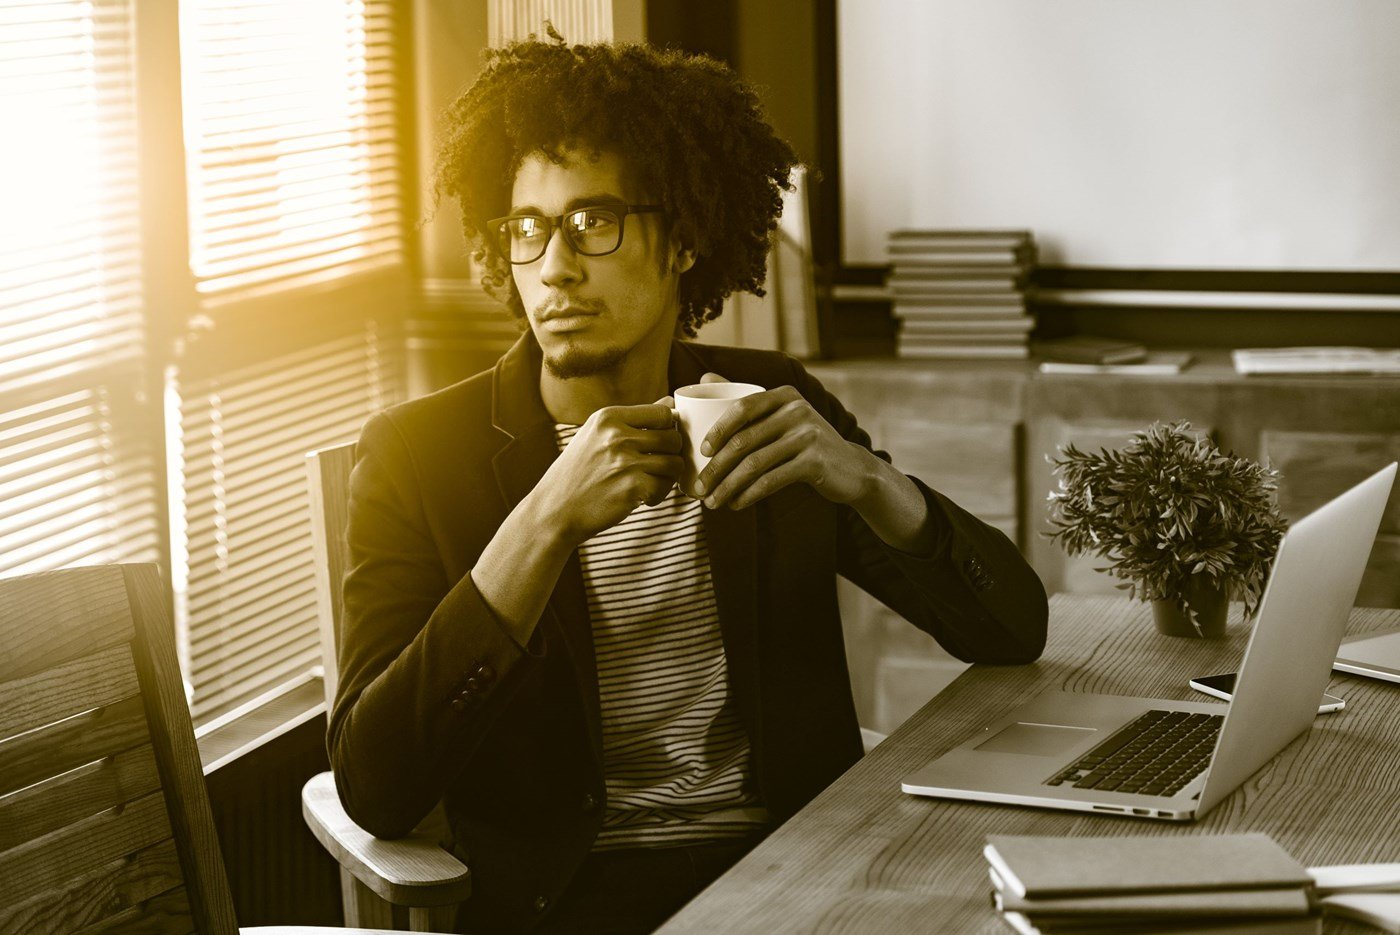 Male wearing eyeglasses in an office holding a coffee cup looking out of window